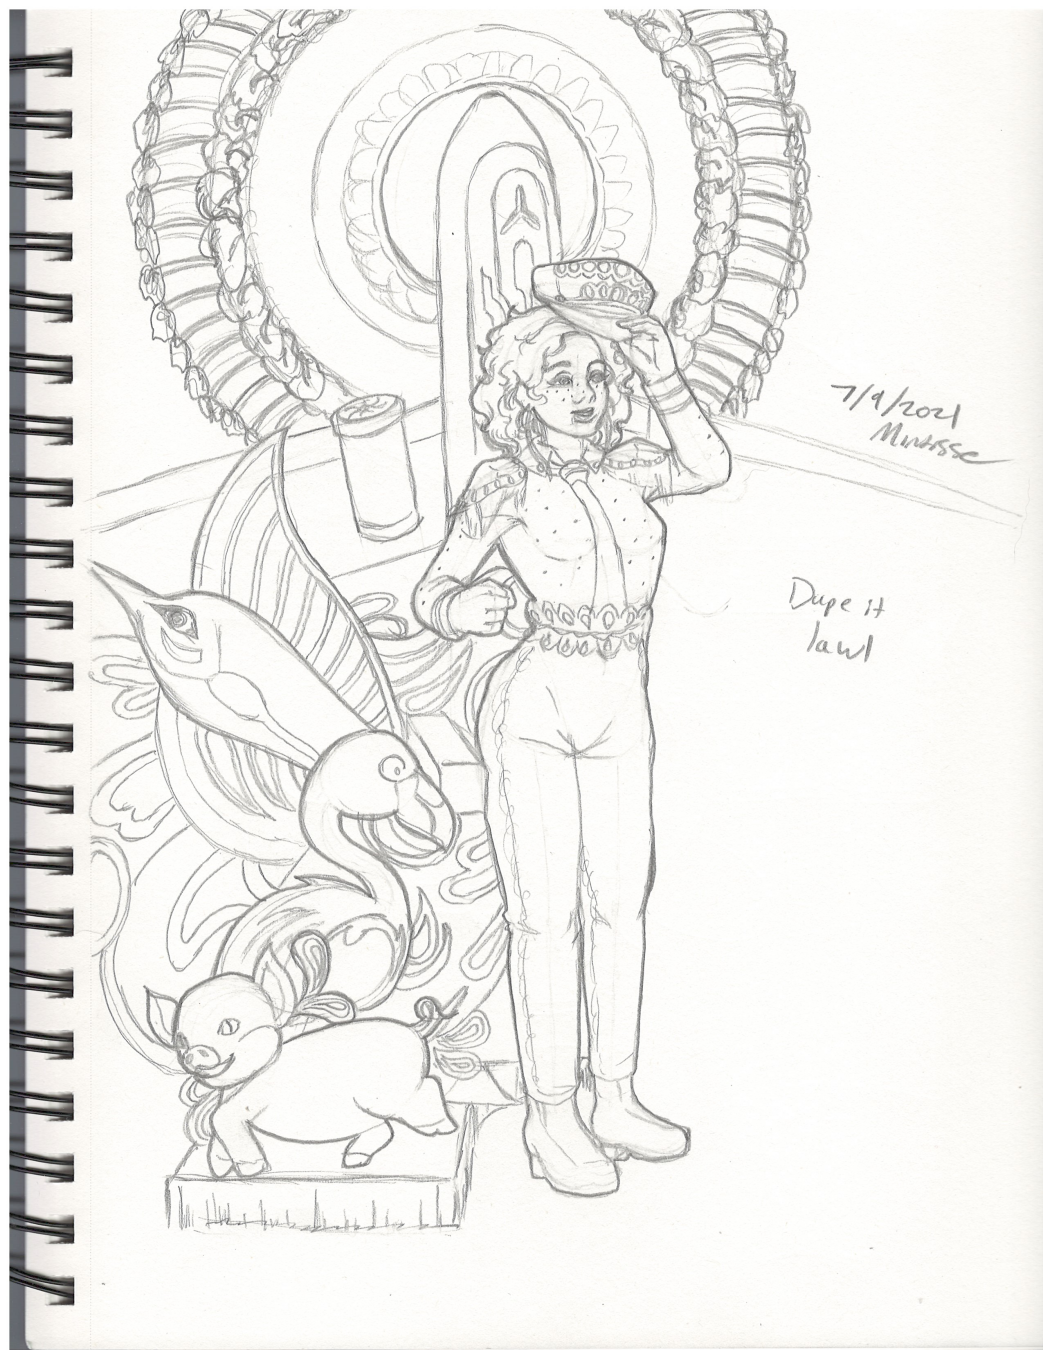 """A black and white sketch of the above illustration of a woman in a bedazzled pilot costume, with some props of swordfish, flamingos, pigs, a plane, and a sun piece behind her. One side of the plane and props are missing, and is instead replaced by writing that says """"Dupe it lawl."""""""